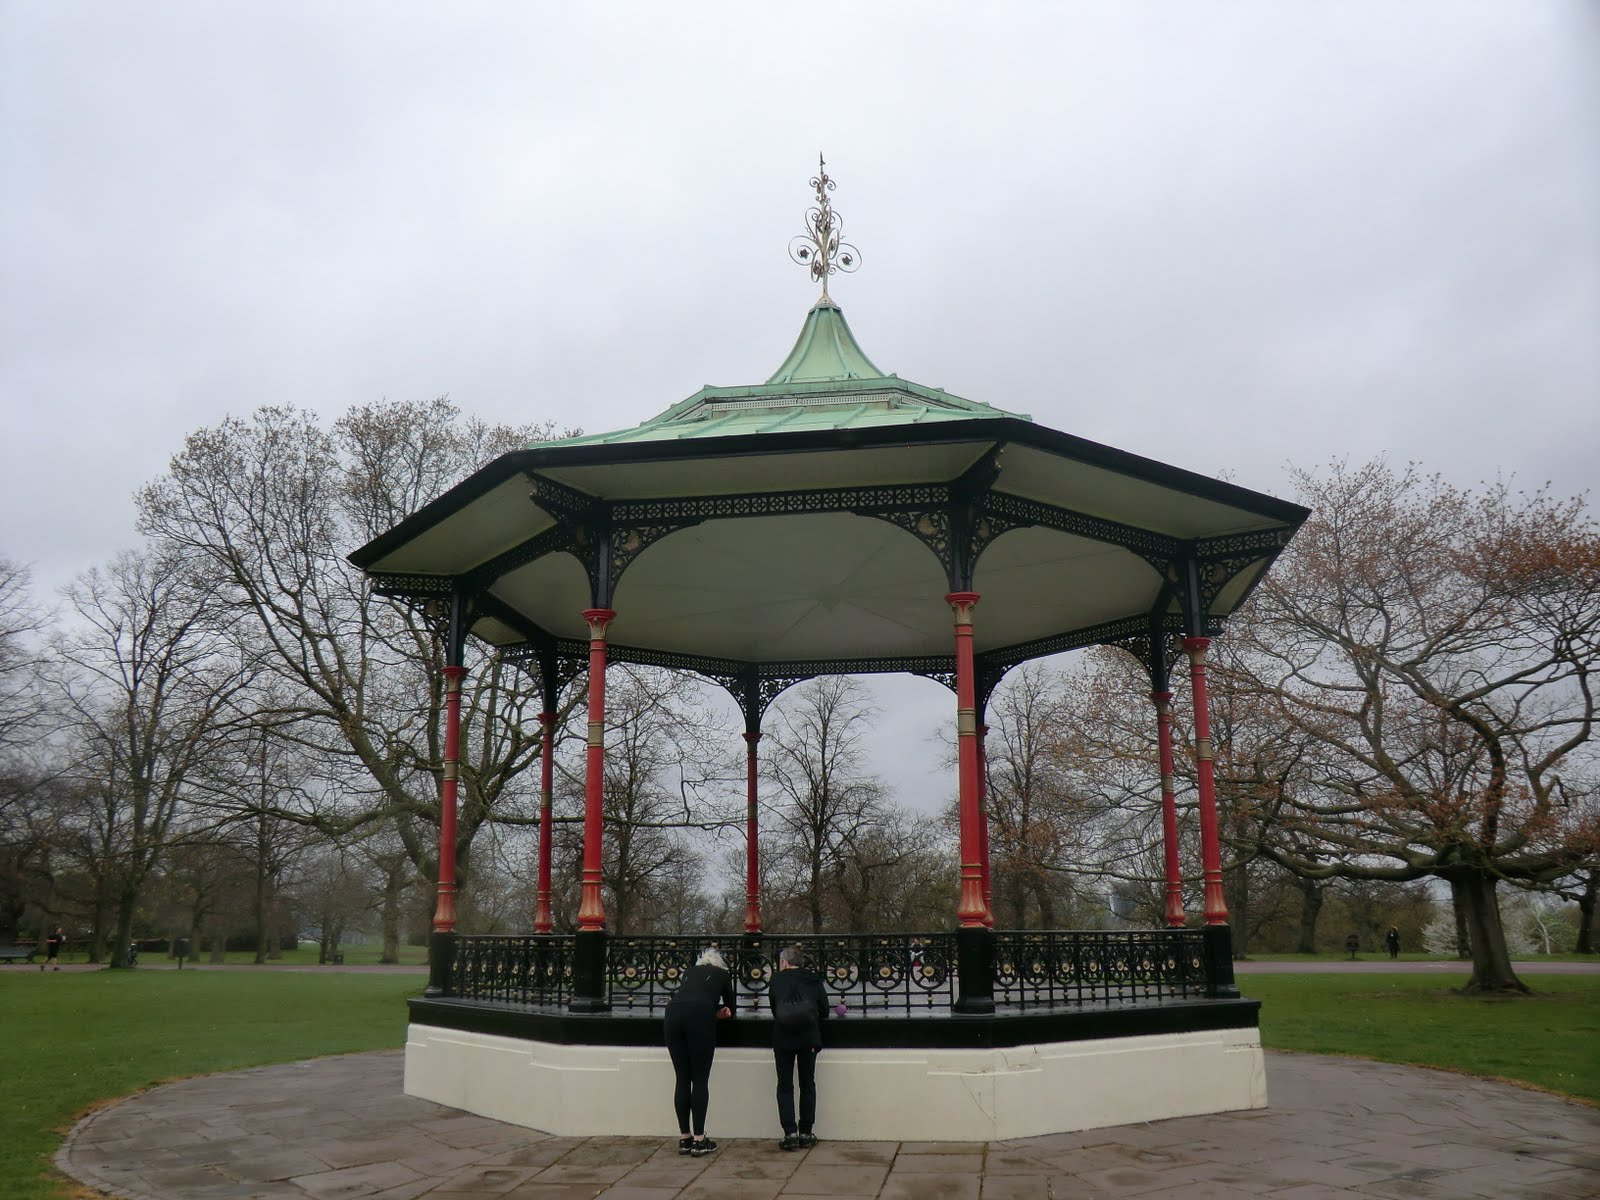 CIMG0346 Bandstand, Greenwich Park